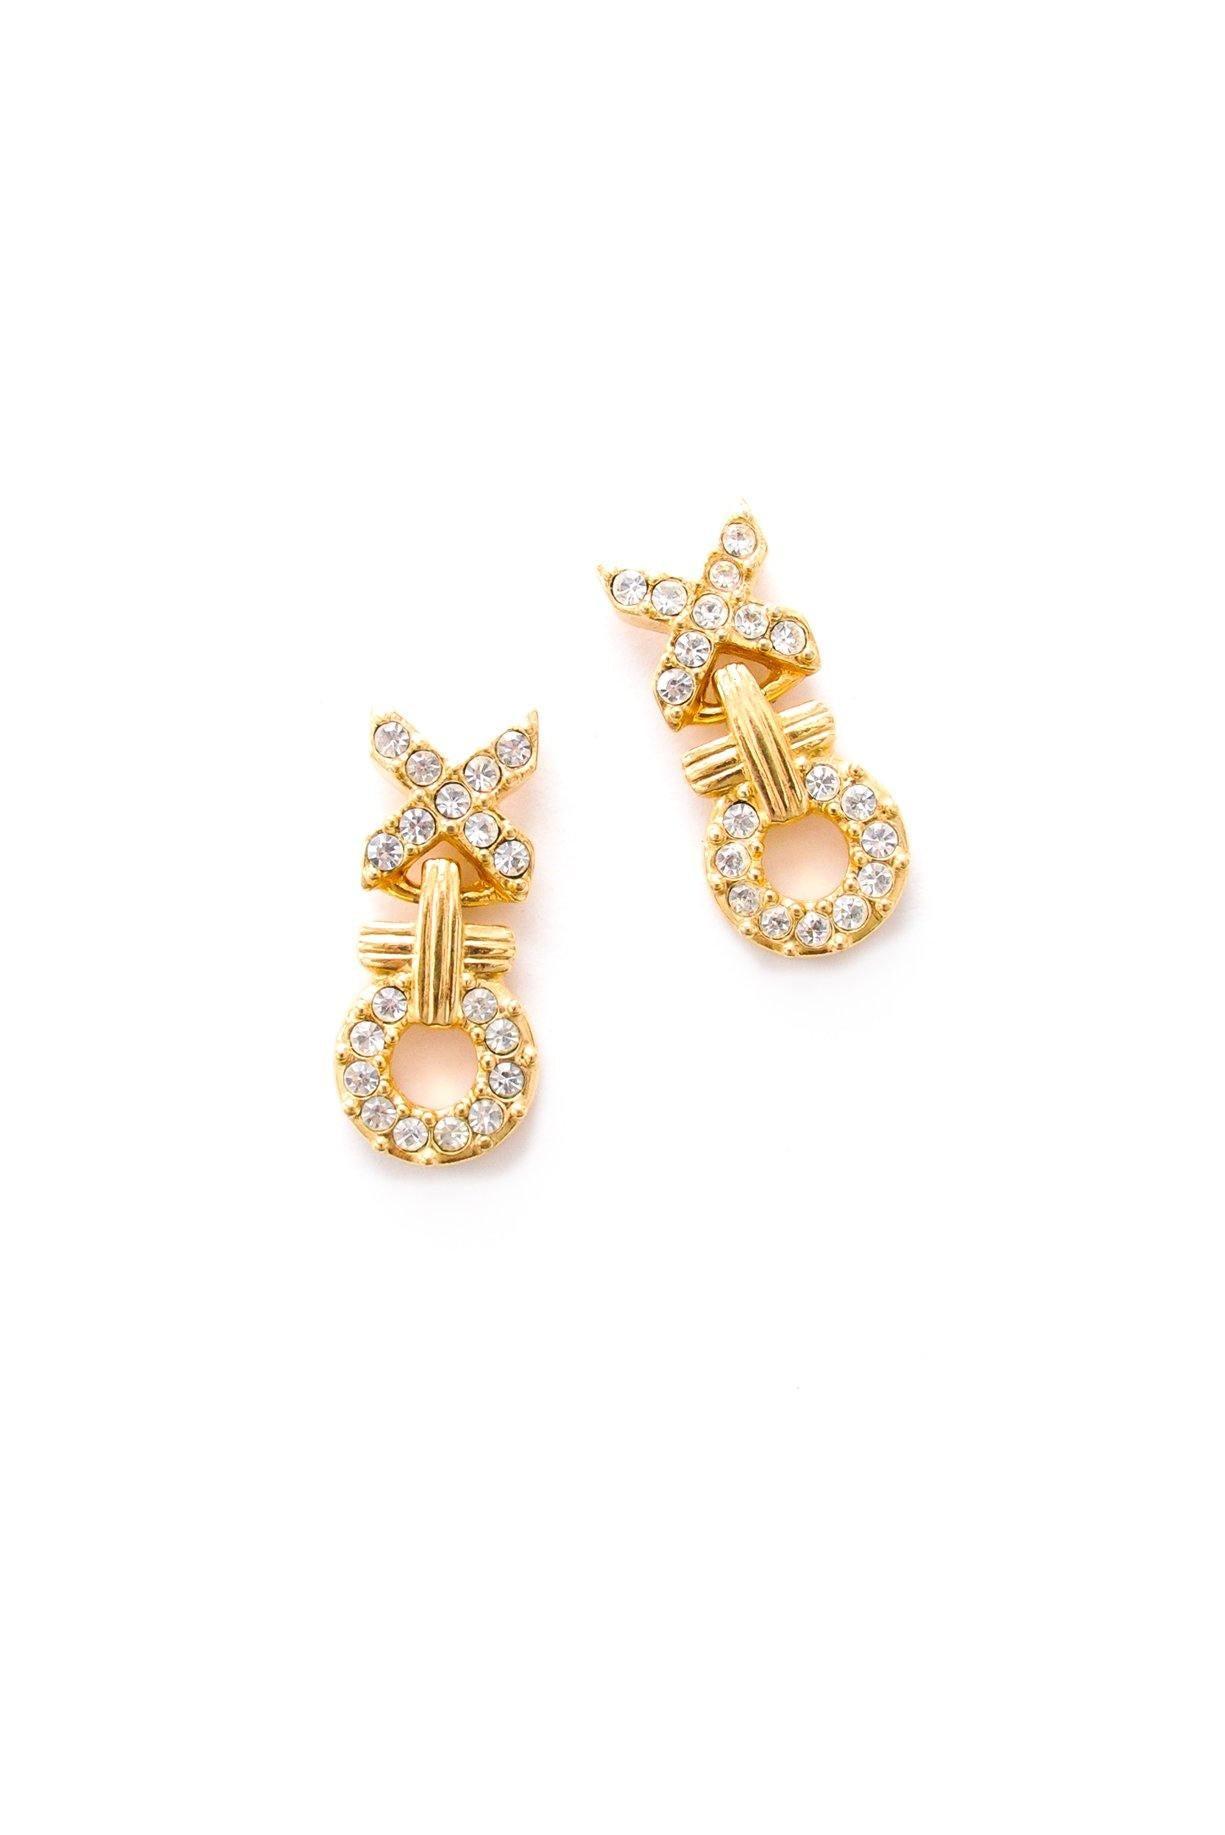 XO Rhinestone Pierced Earrings